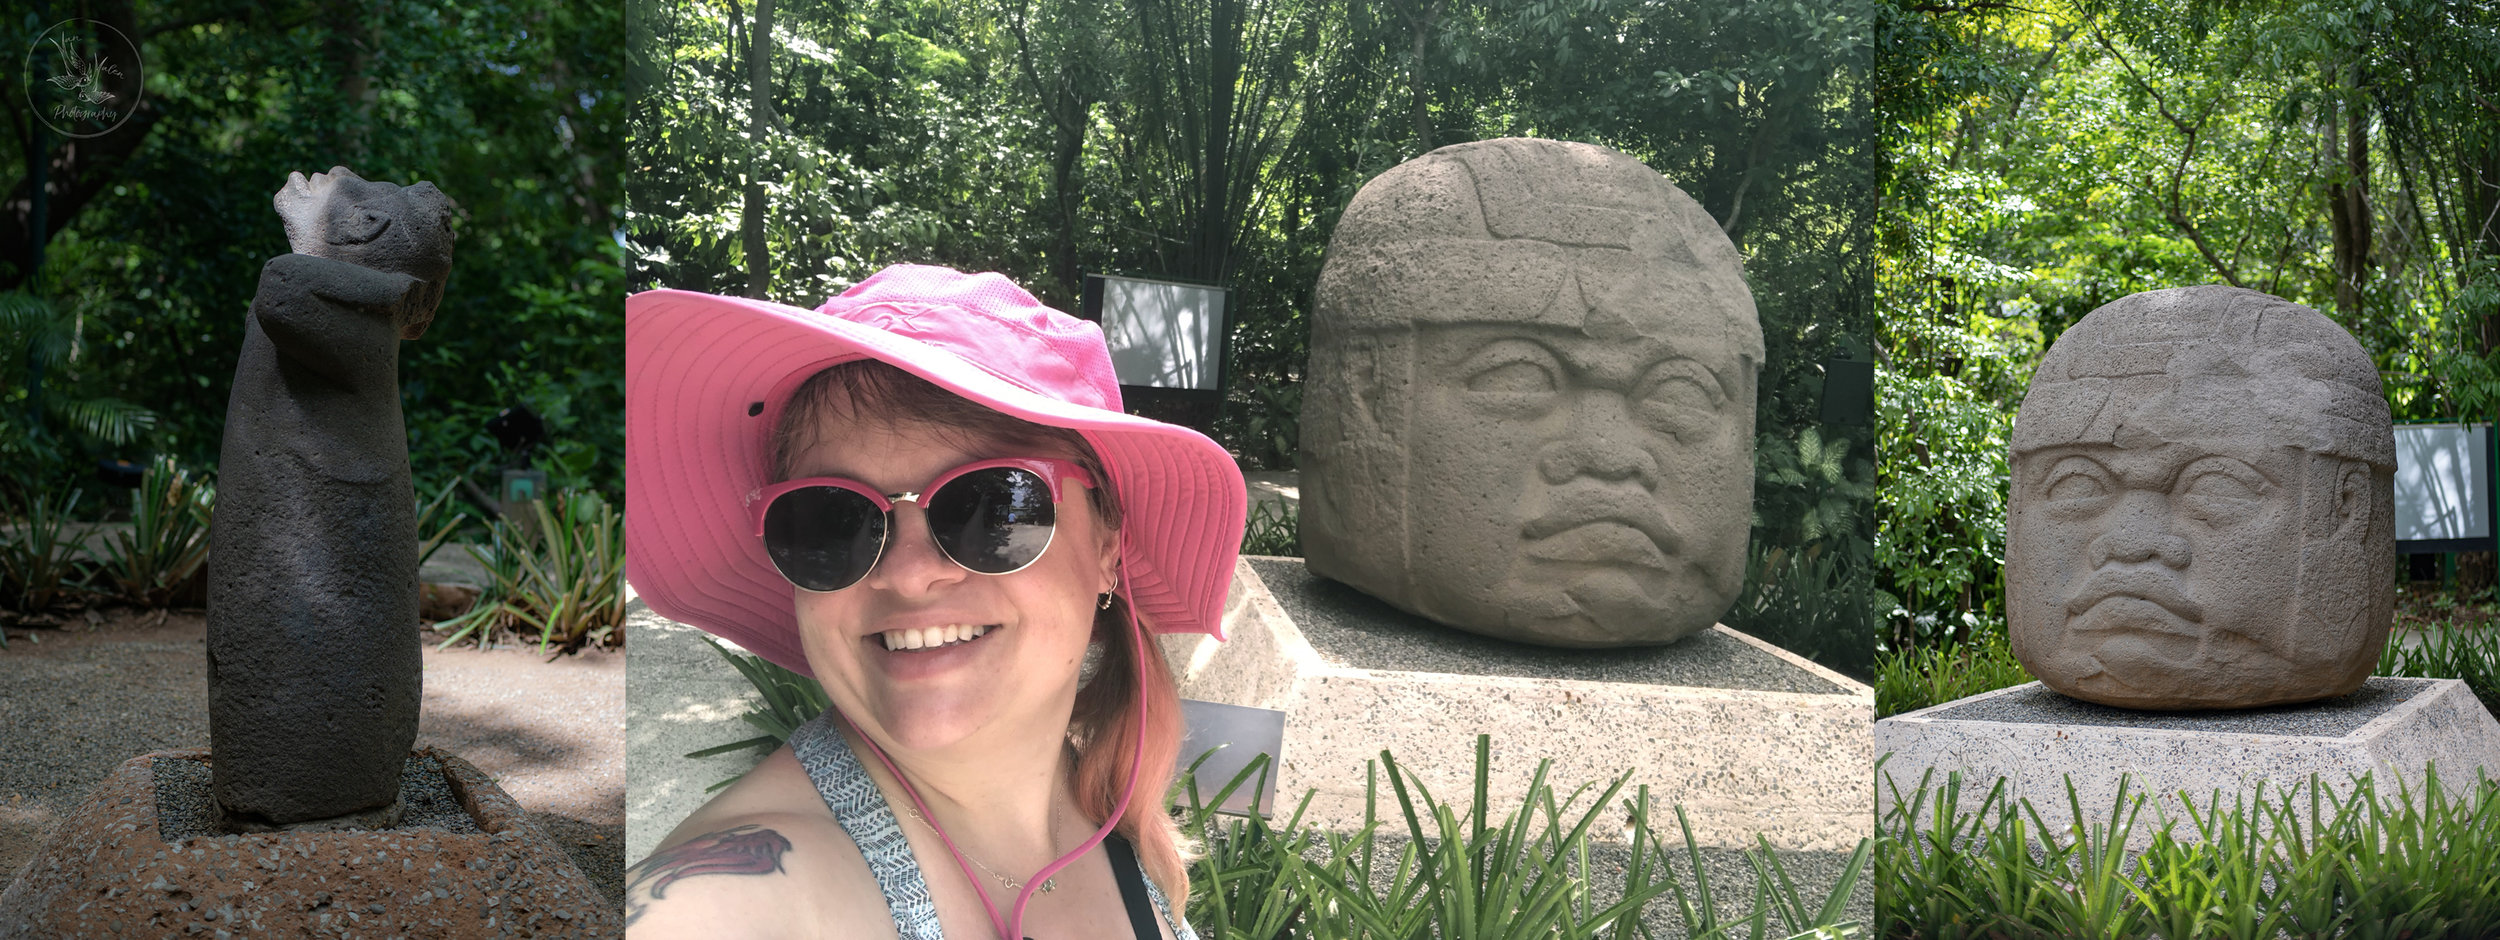 Me and some of the awesome Olmec statues - they are so, so big! Super cool to see them in person.